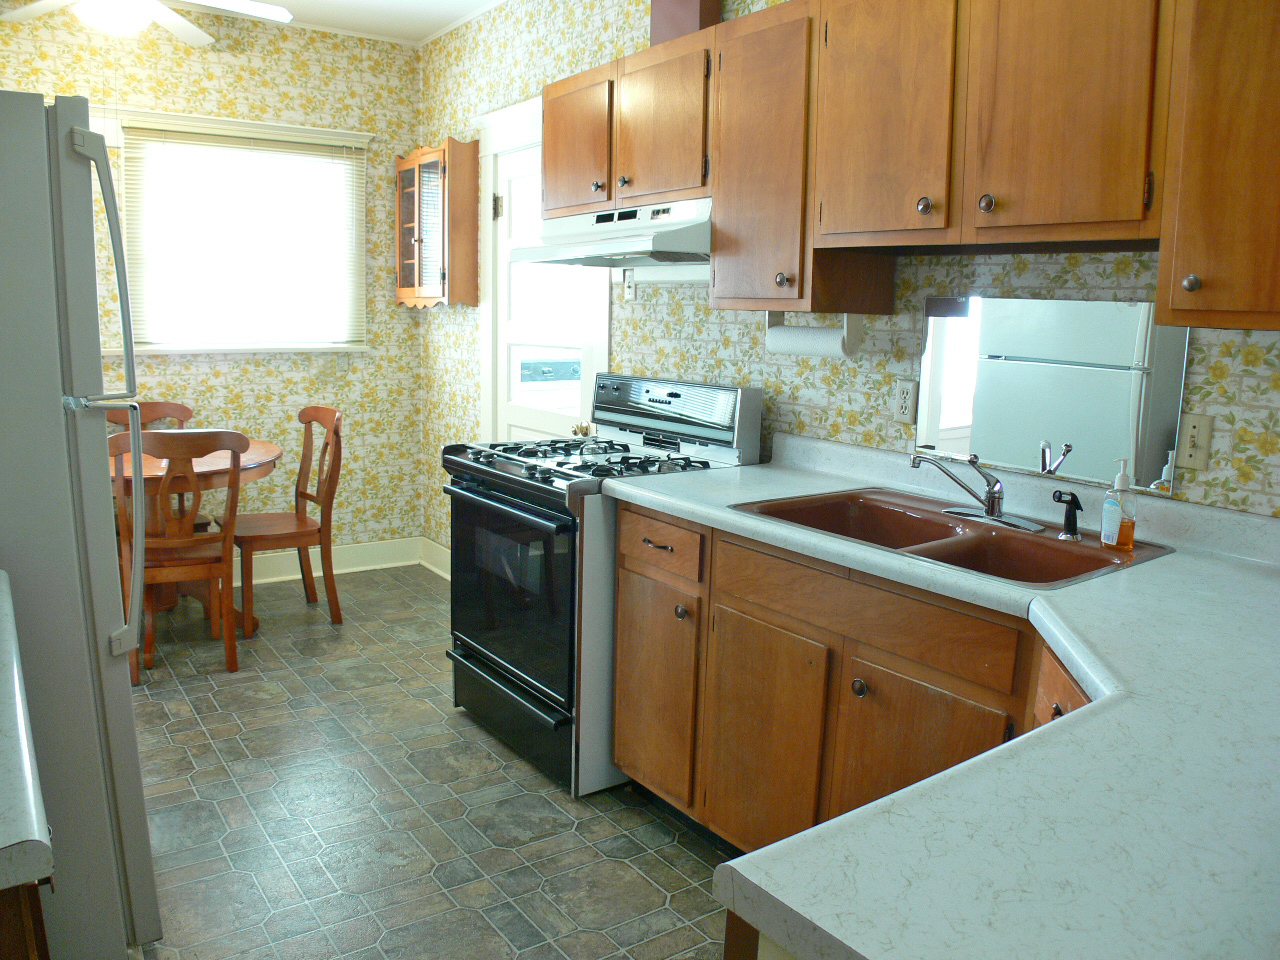 Kitchen was remodeled in the 70's, but it does have a dishwasher, gas stove and casual dining area.